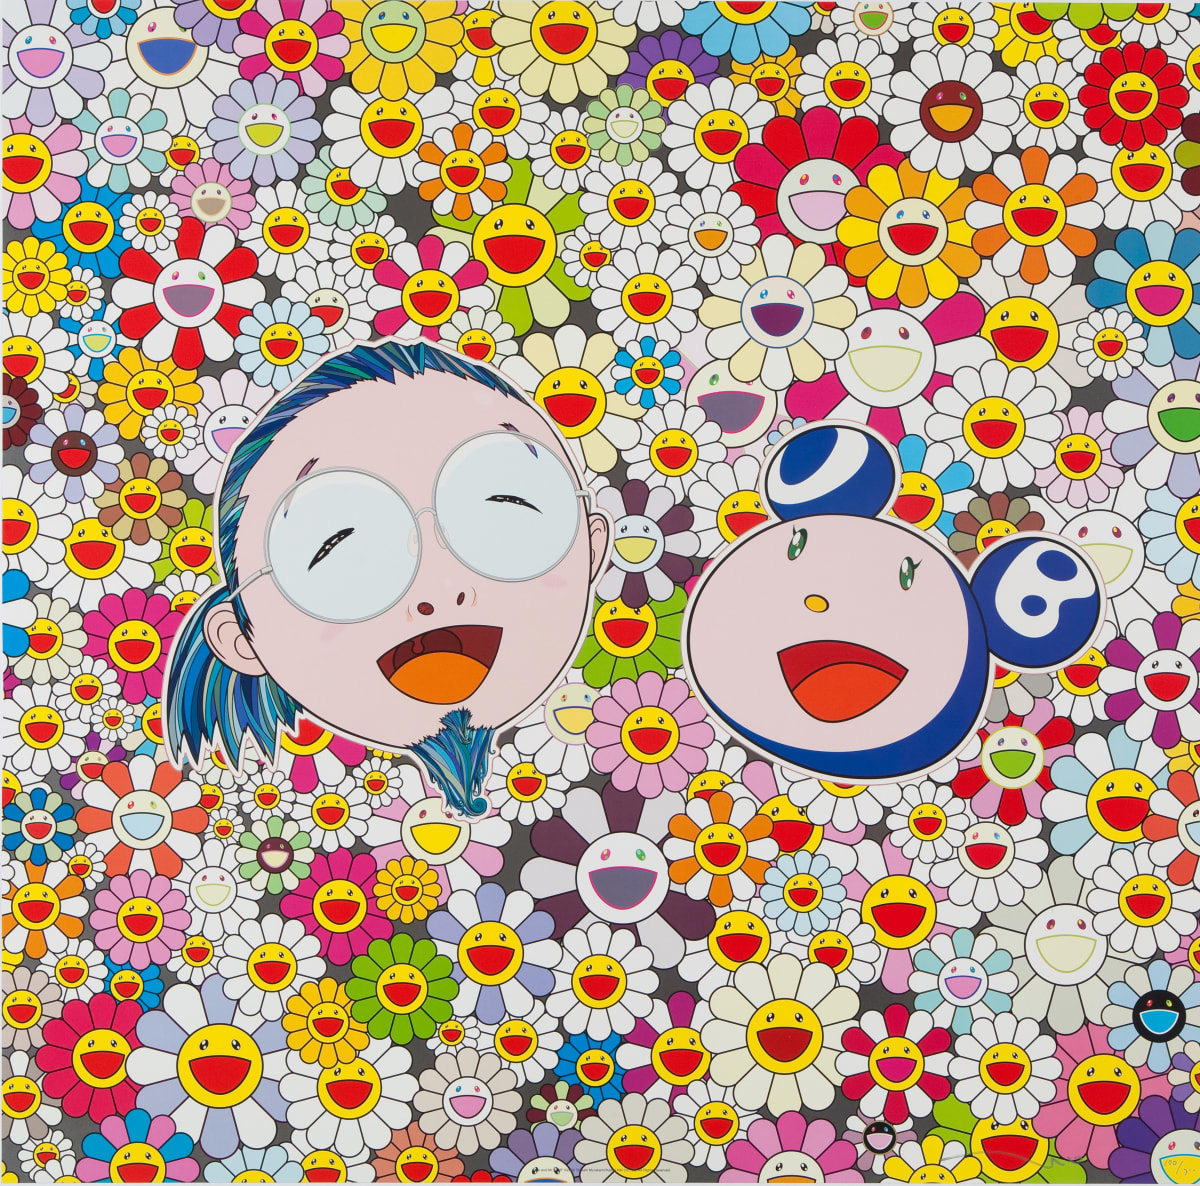 Takashi Murakami, Me and Mr. DOB, 2010